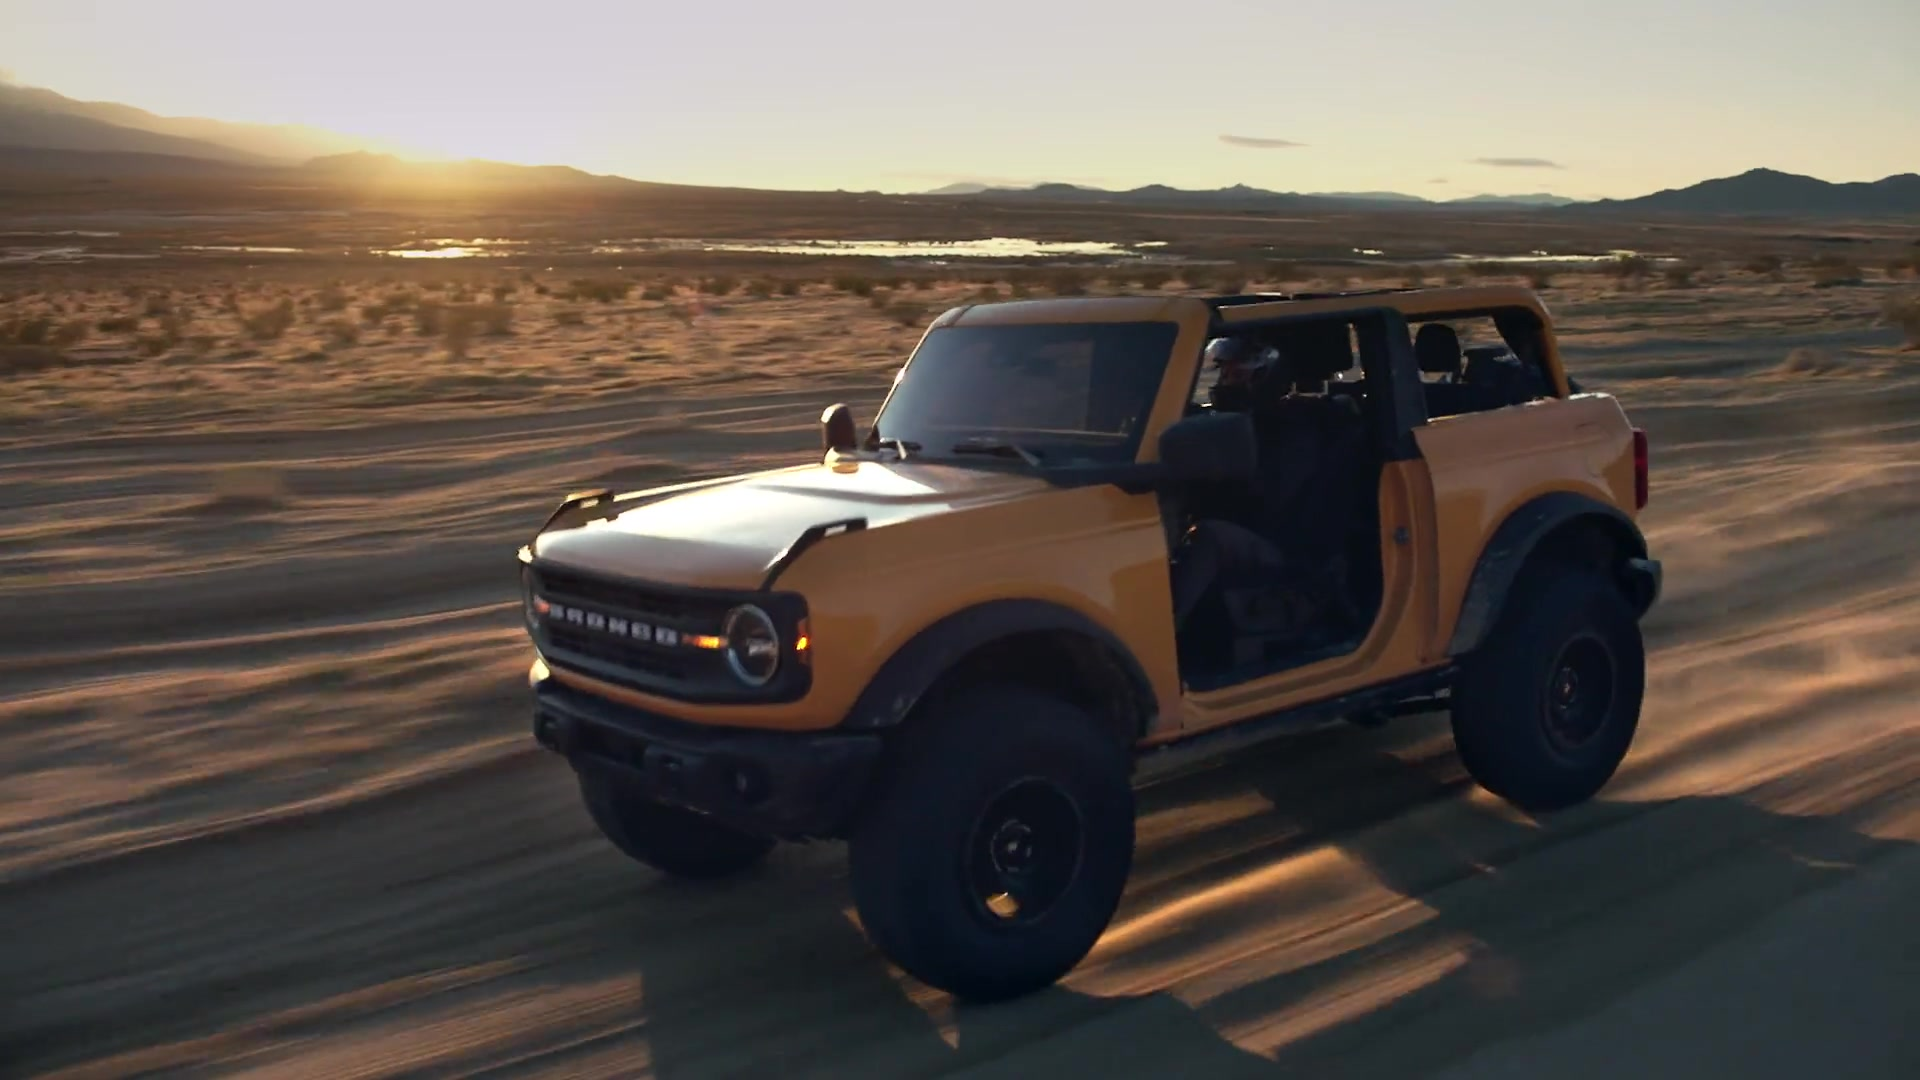 Moray Callum's 3D scanned First Gen Bronco Feature Video